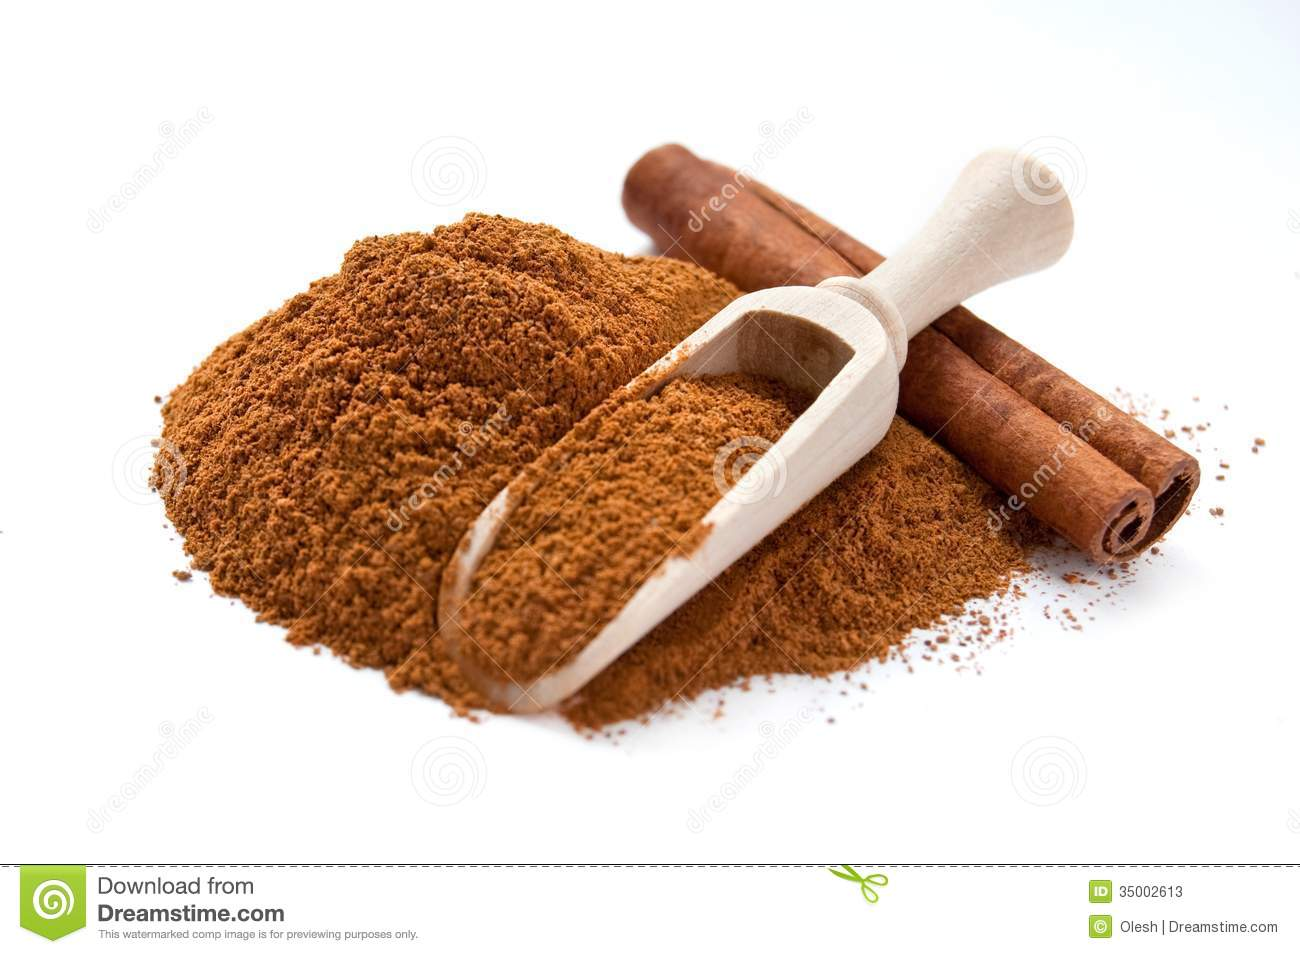 how to make ground cinnamon from cinnamon stick